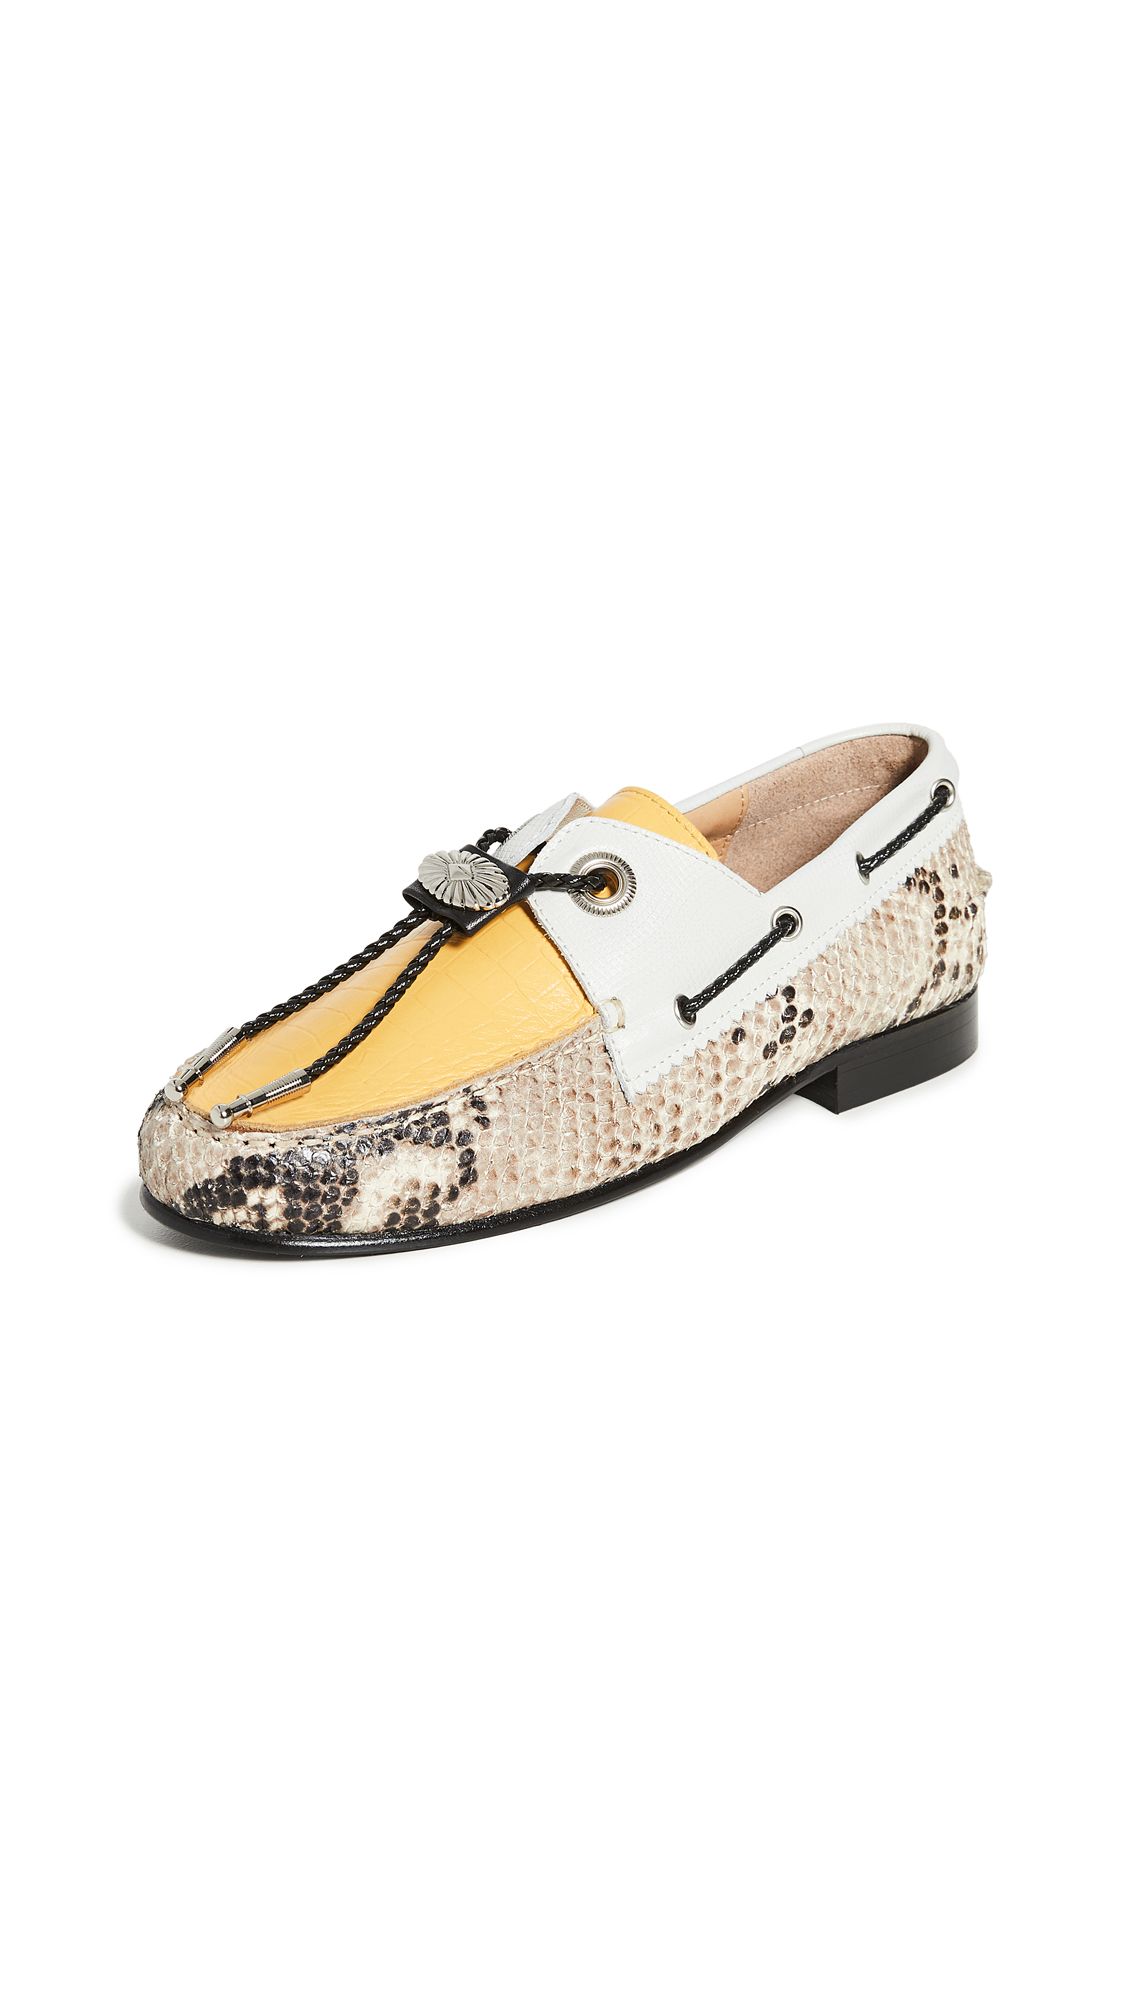 Buy Toga Pulla Bolo Tie Loafers online, shop Toga Pulla